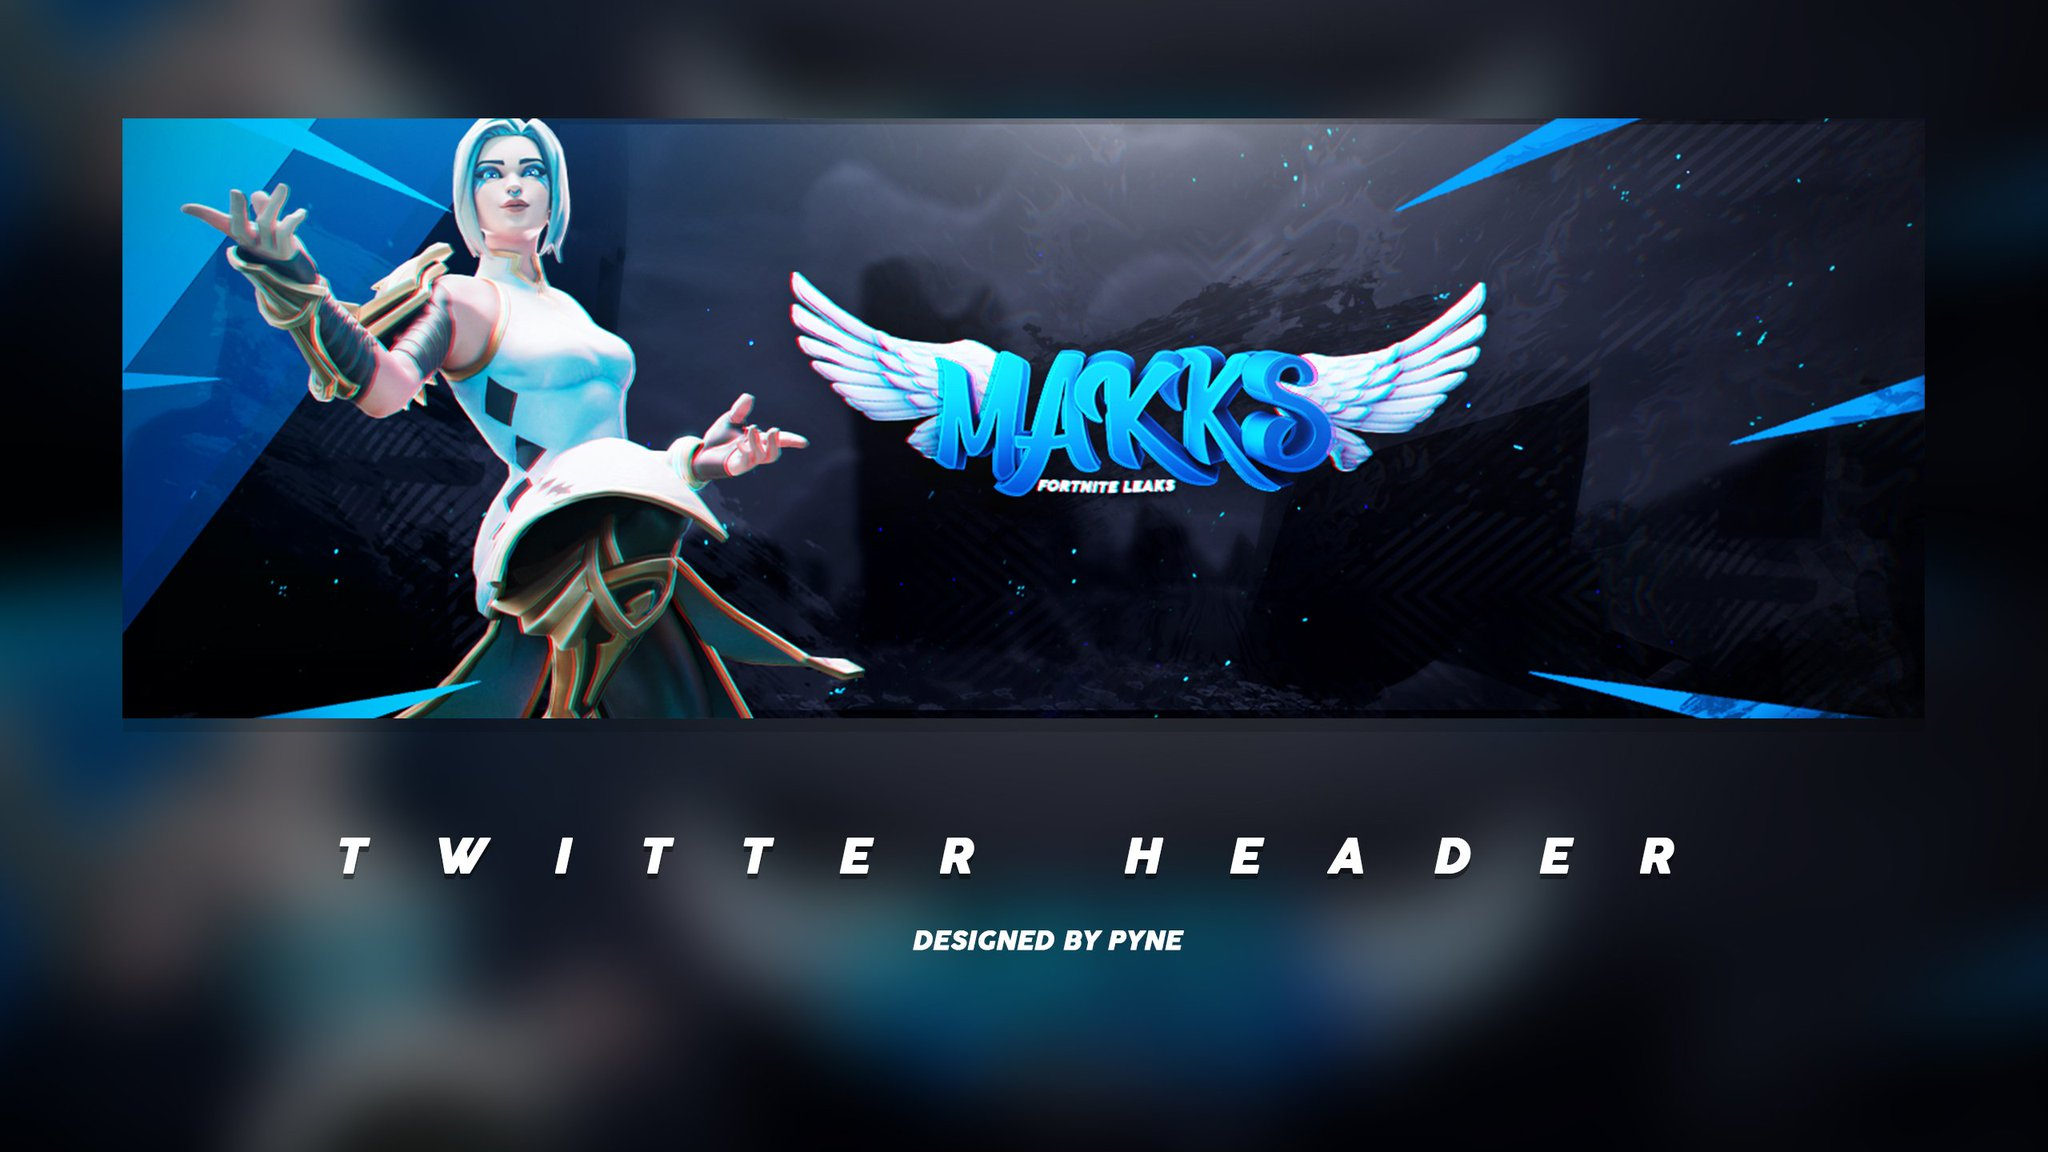 Pyne On Twitter Fortnite Twitter Header Makksbr Rt S And